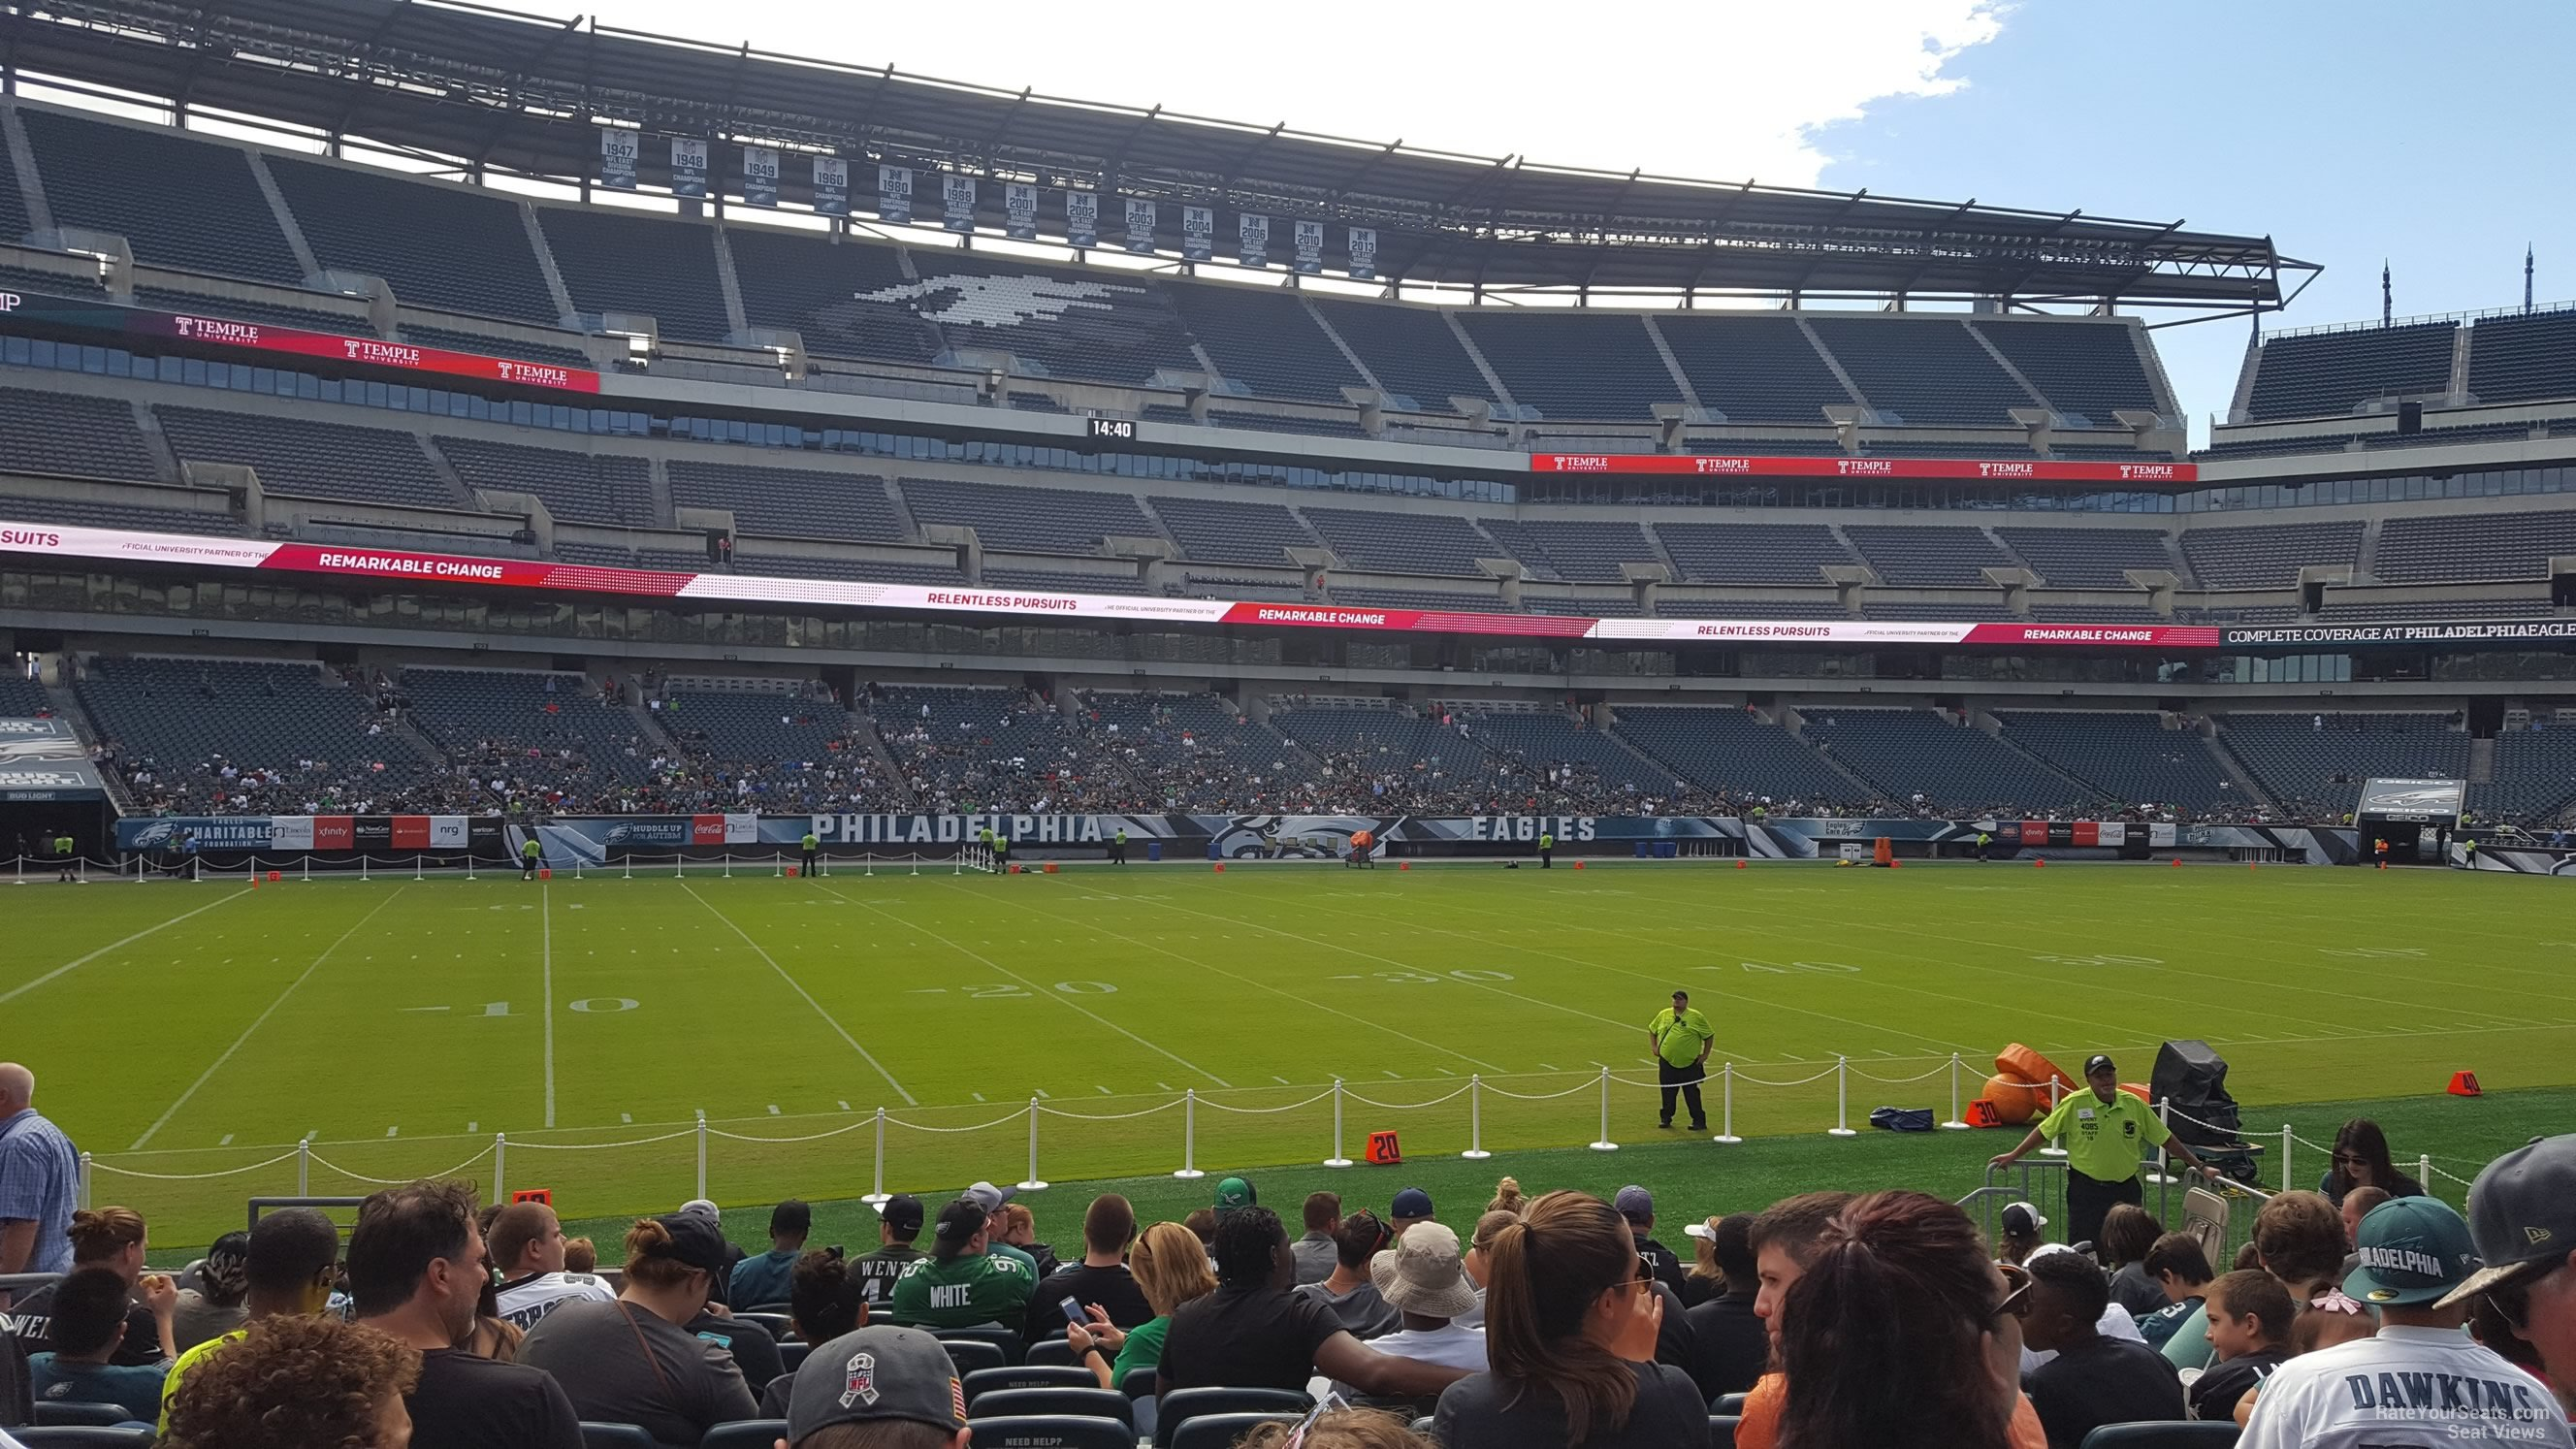 Section 136 seat view